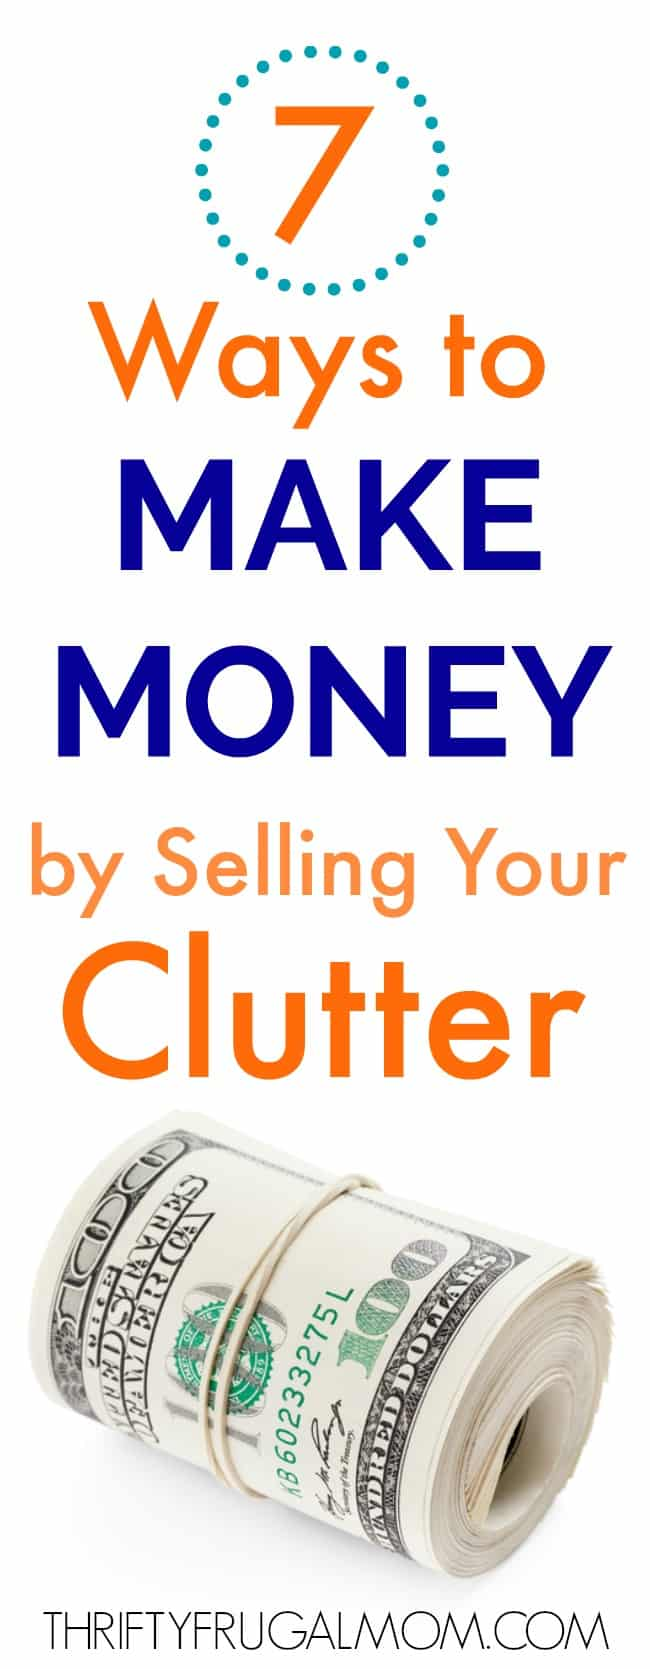 make money by selling clutter